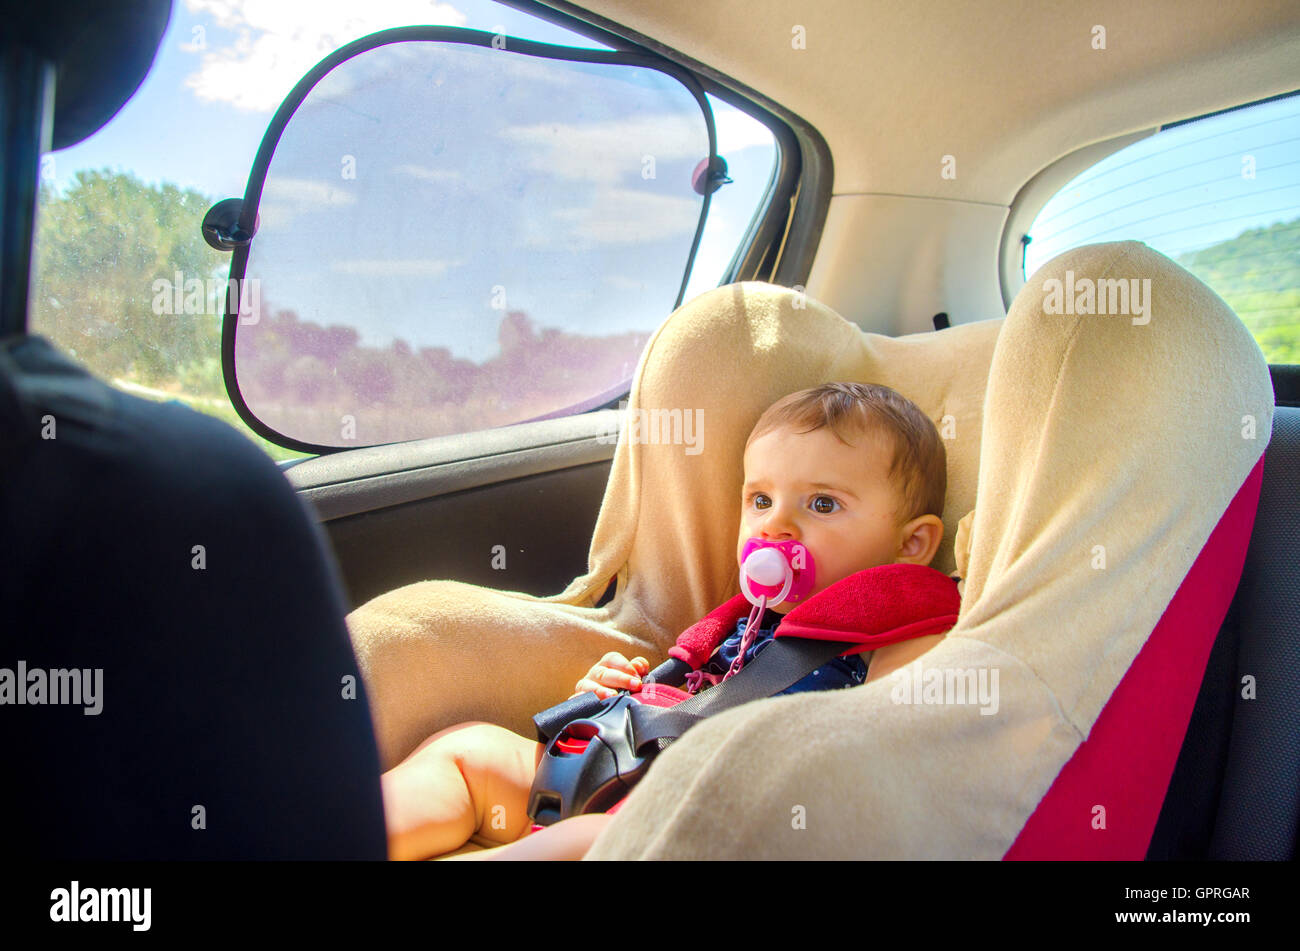 baby seat car curtains - Stock Image